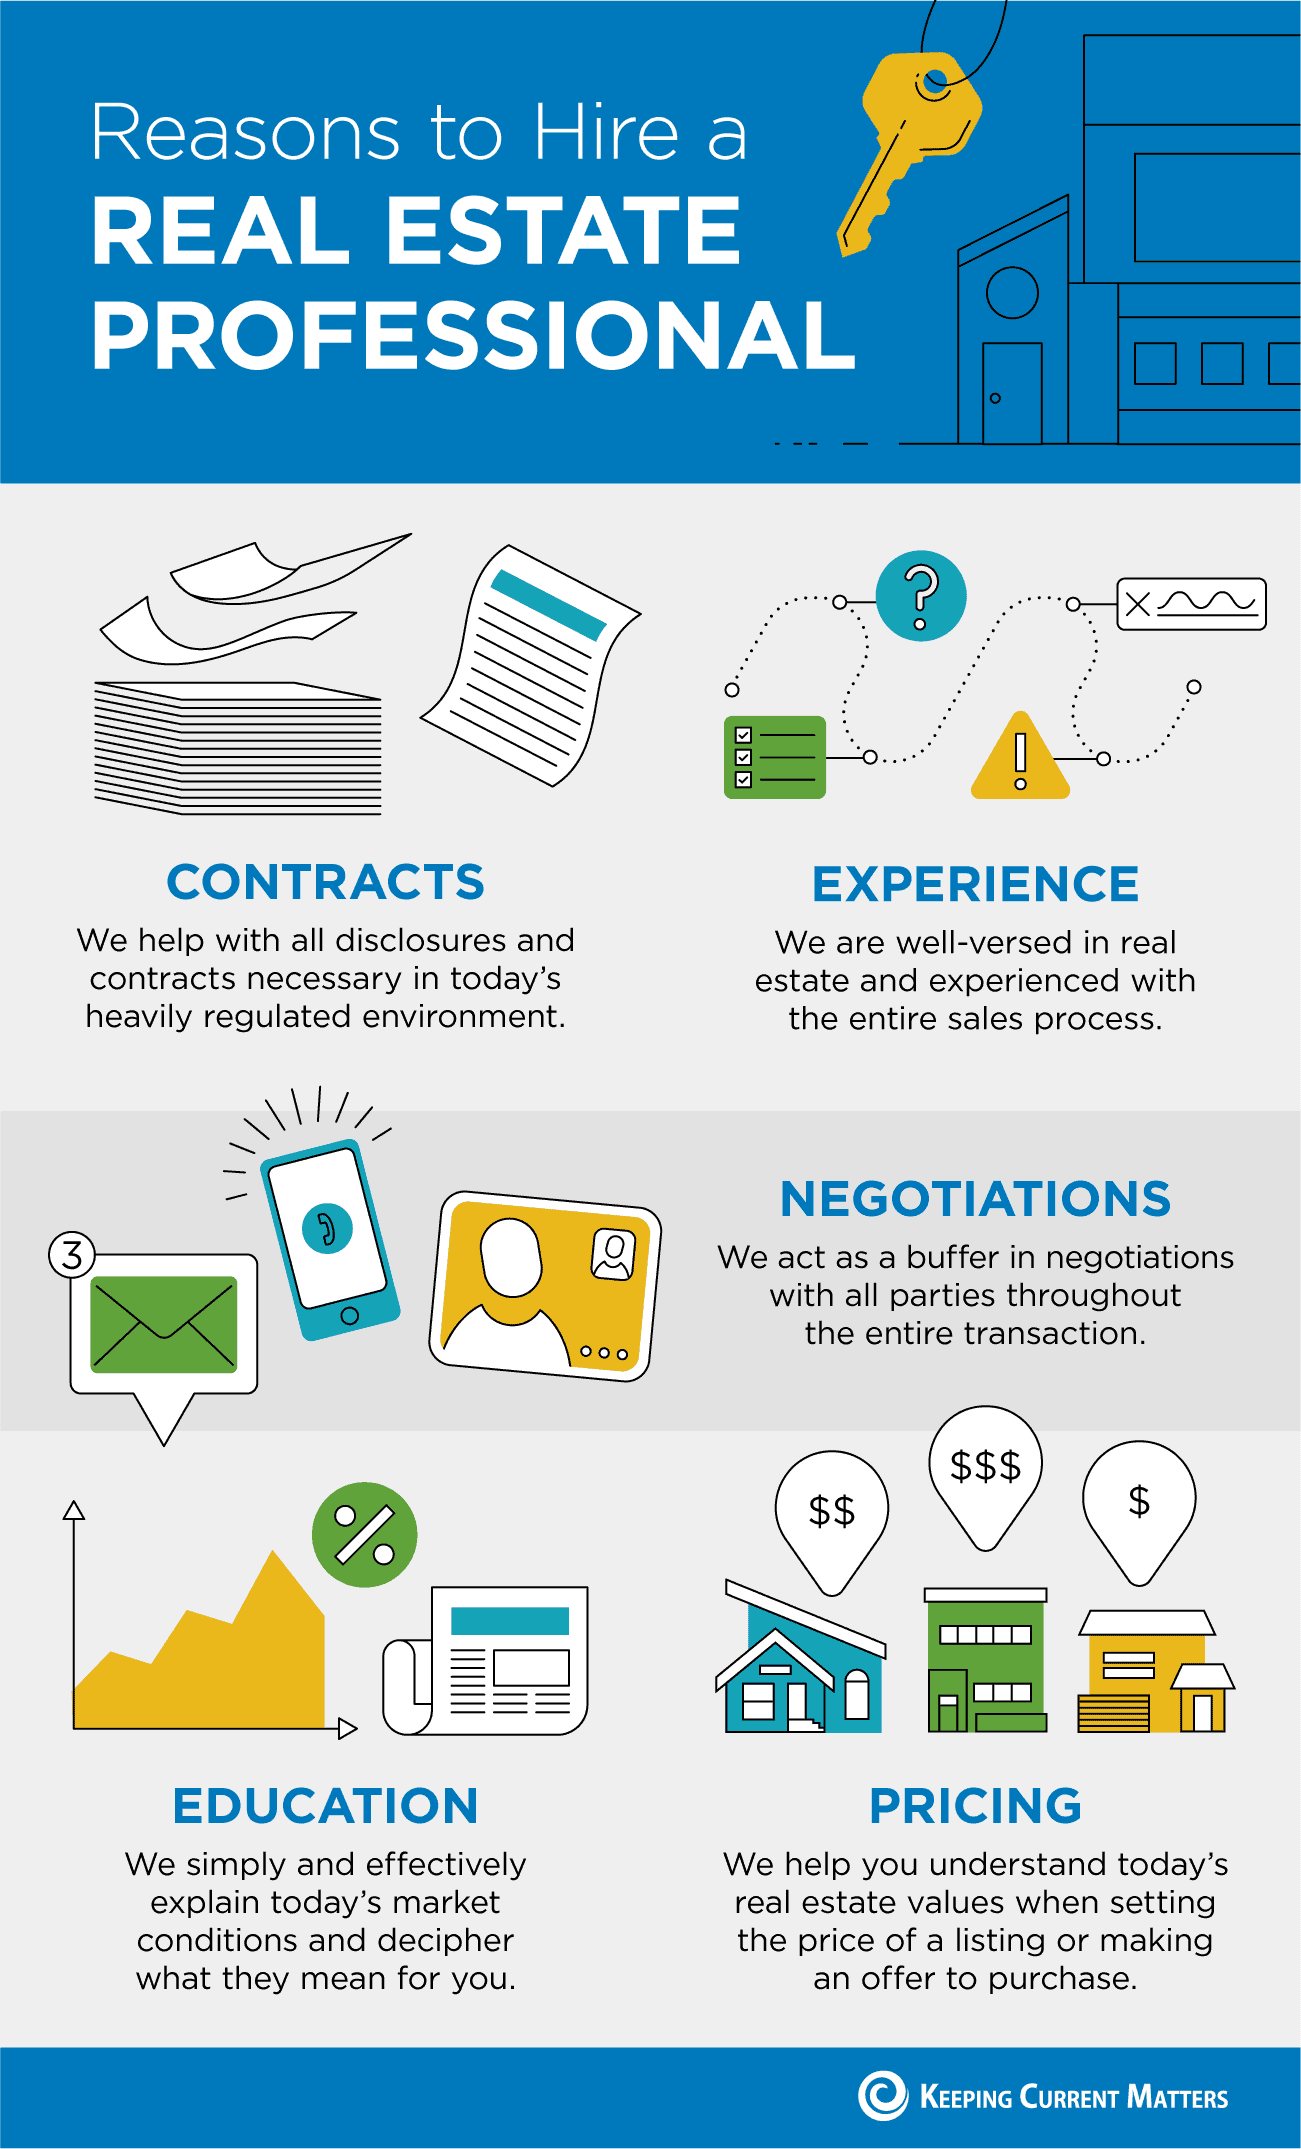 Reasons to Hire a Real Estate Professional [INFOGRAPHIC] | Keeping Current Matters